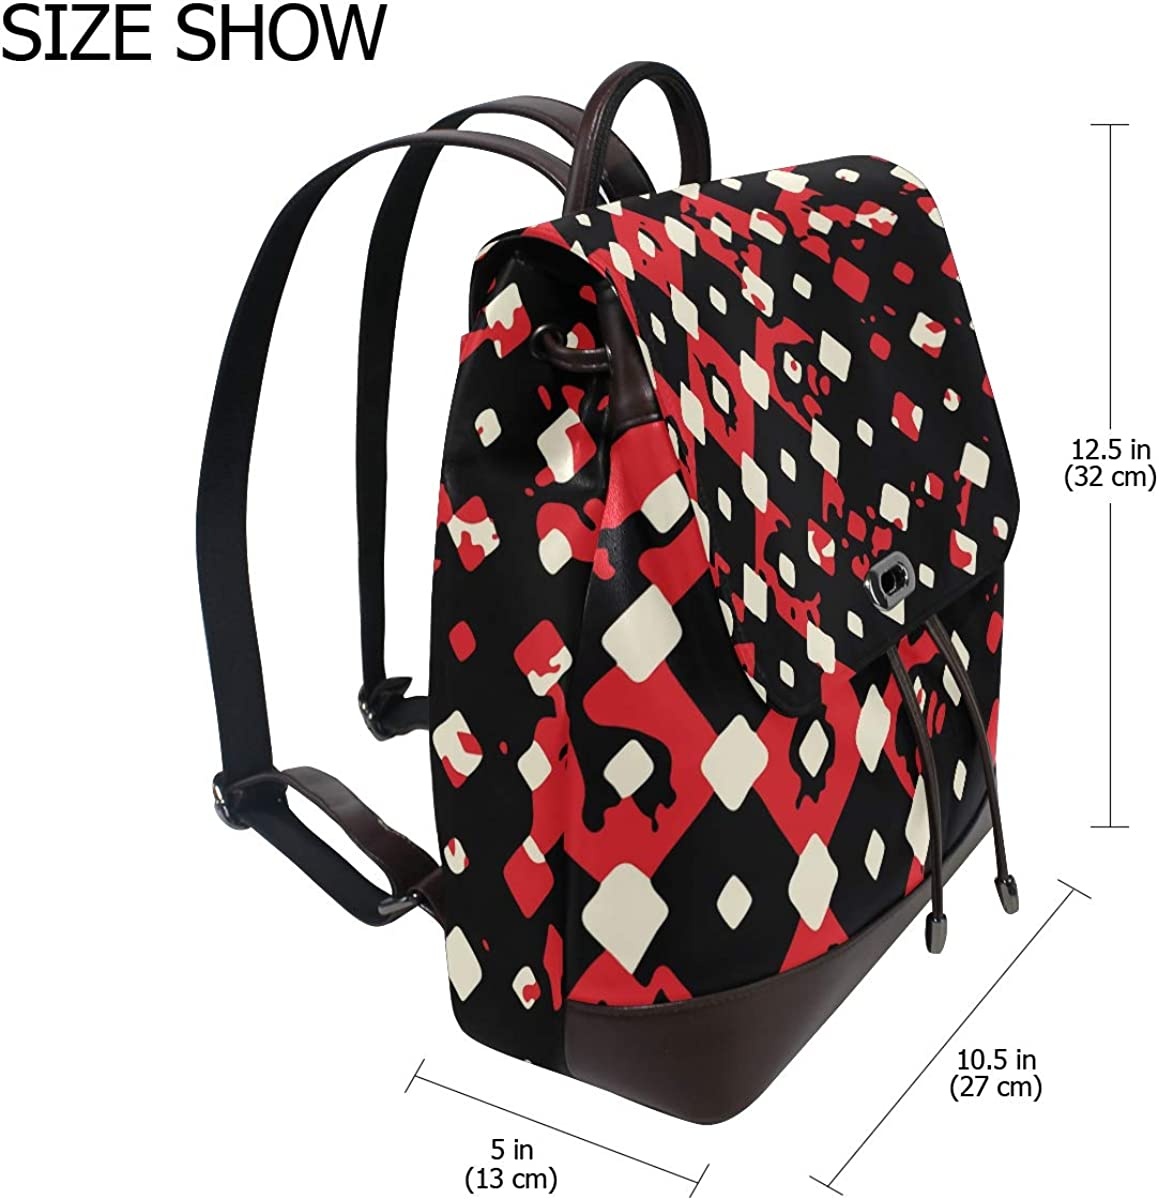 KEAKIA Women PU Leather Black And Red Pattern Backpack Purse Travel School Shoulder Bag Casual Daypack